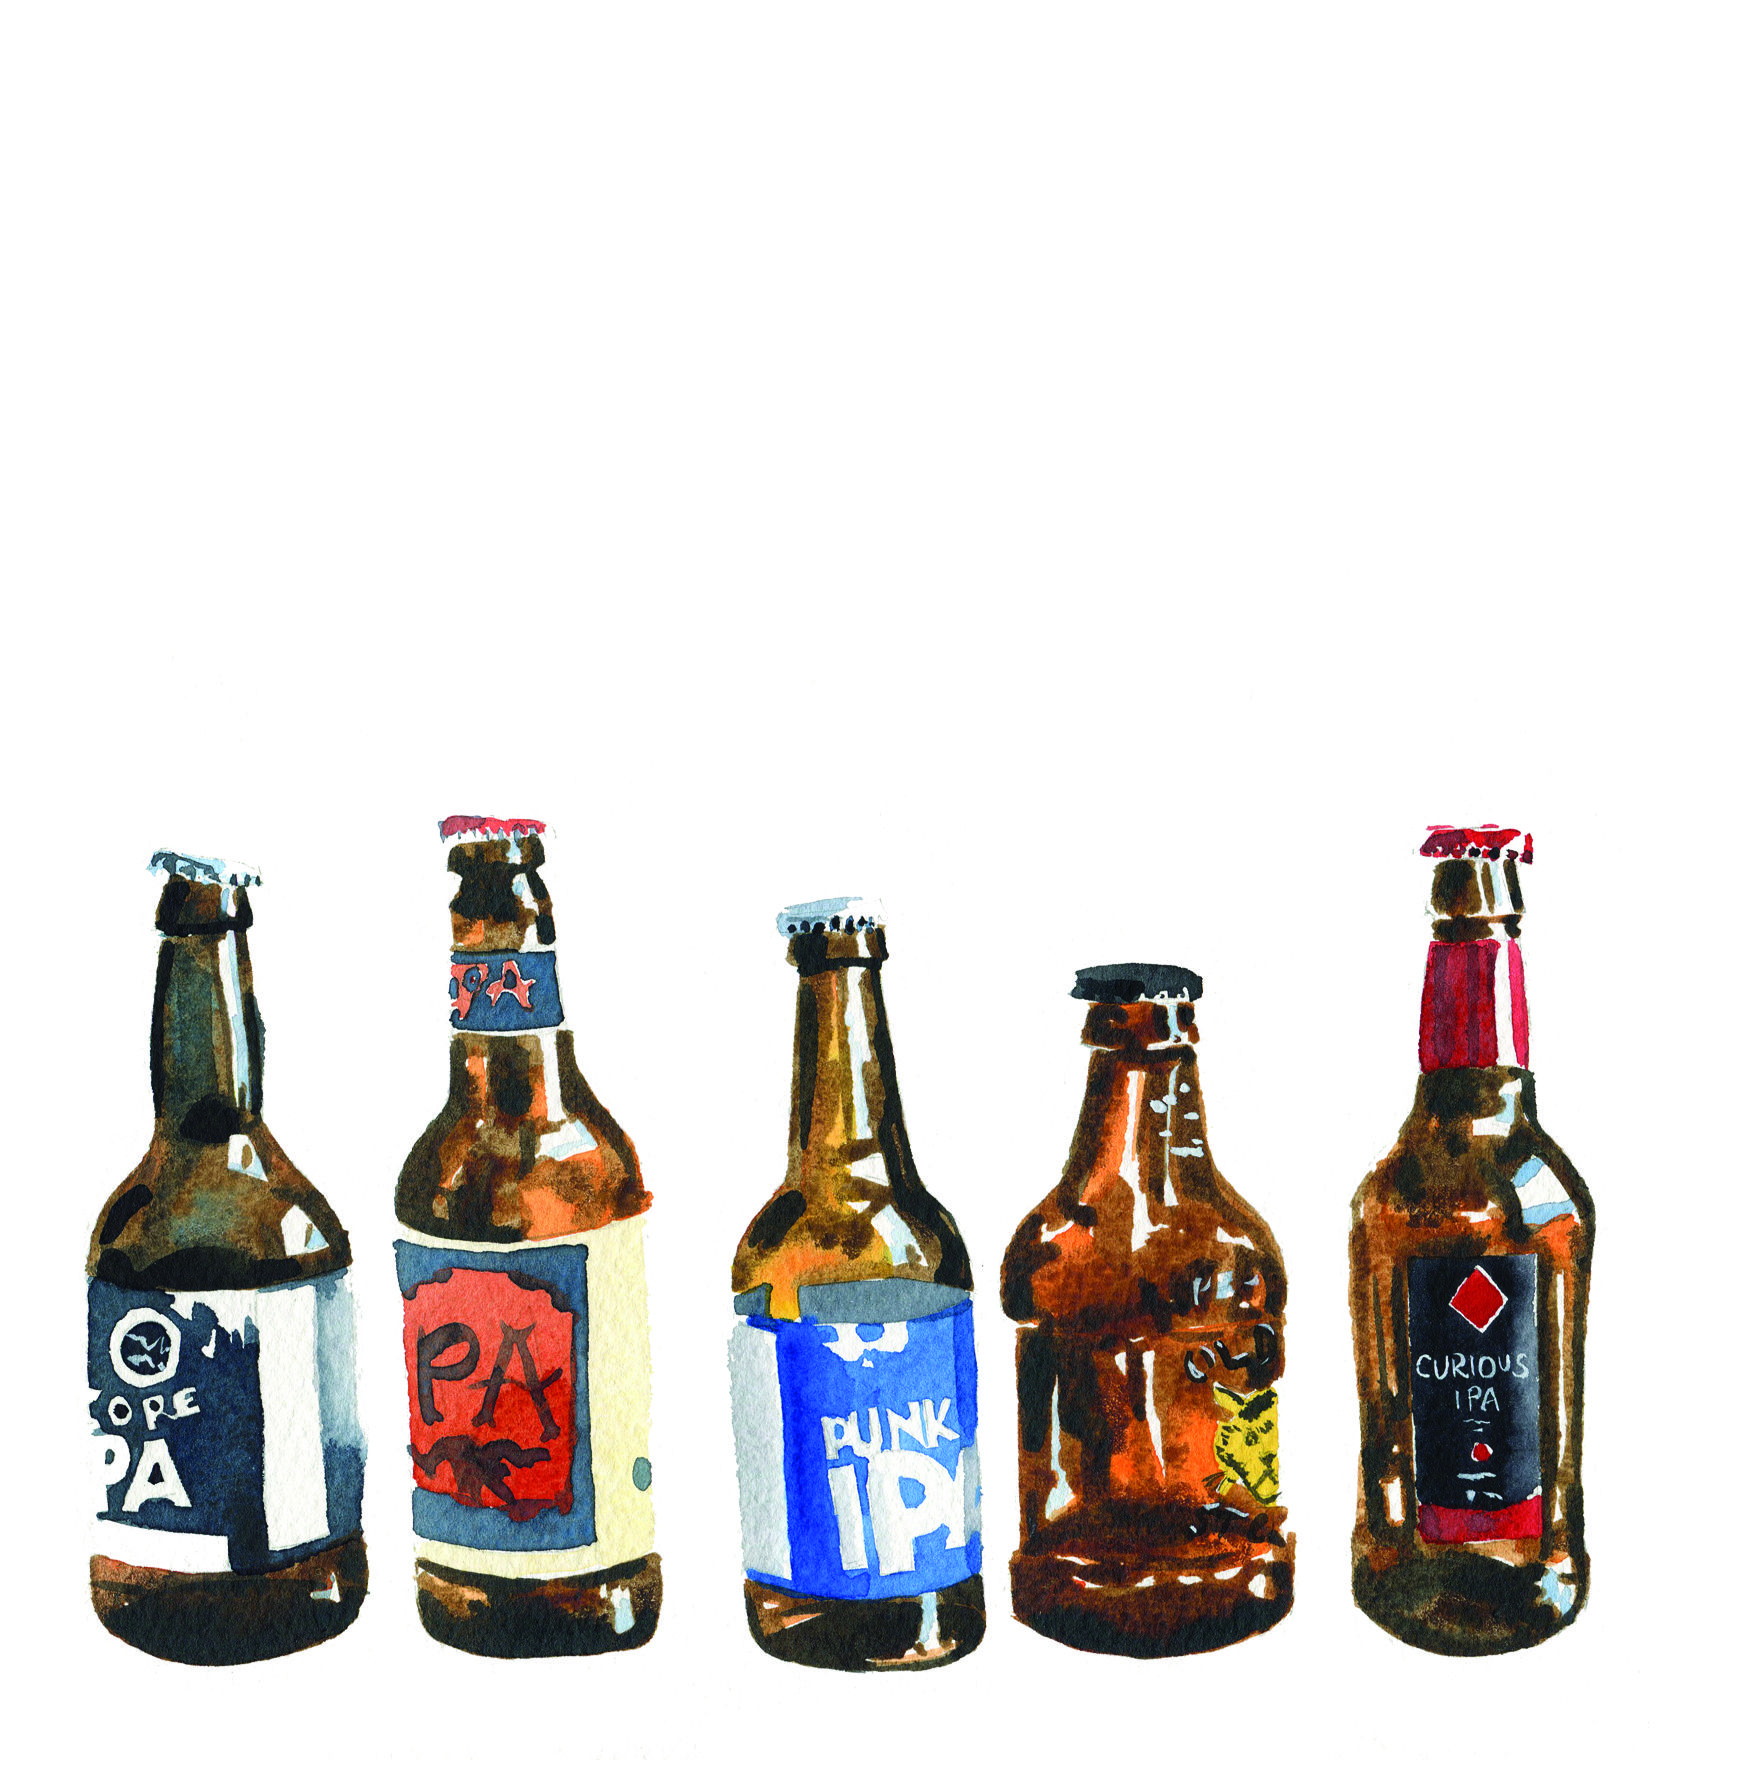 1750x1772 Watercolour Beer Bottles Paintings Inspiration Bottle Painting